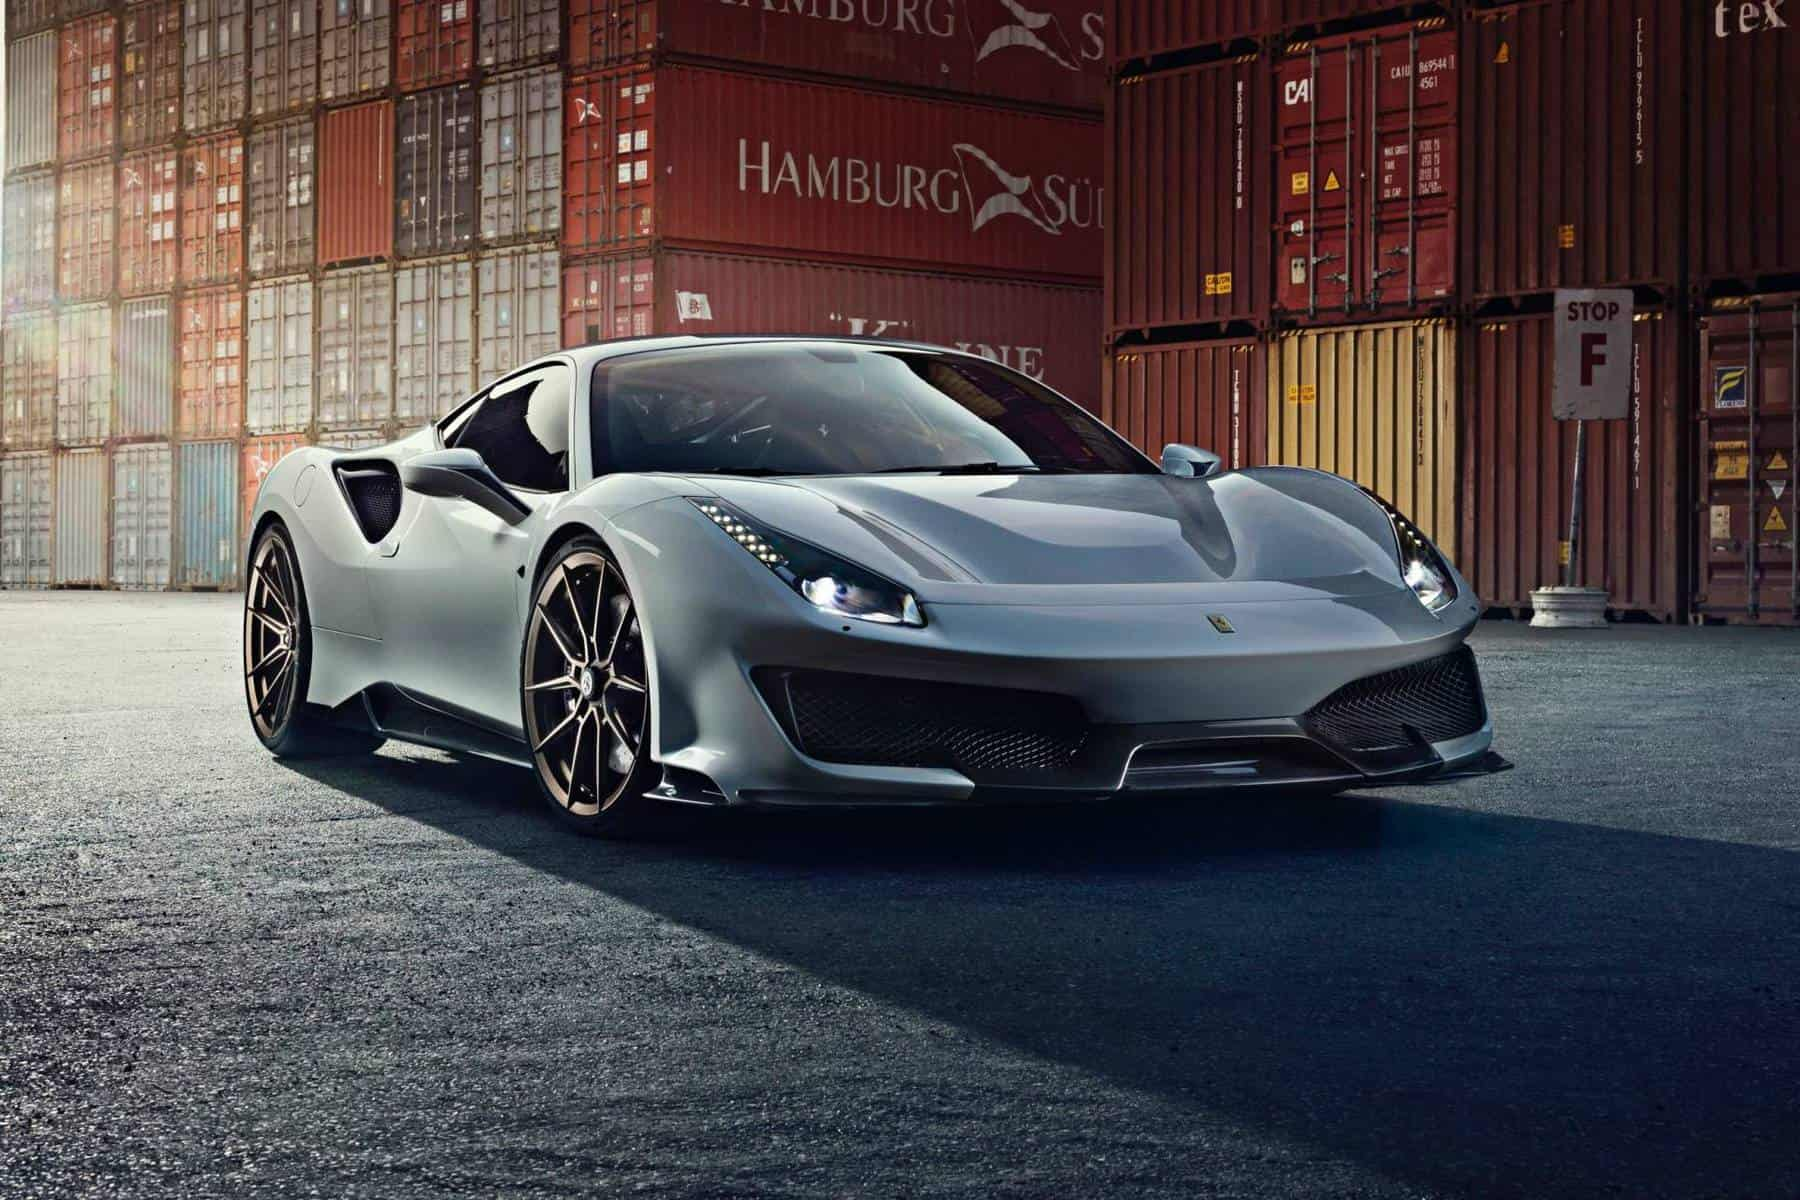 Tuning a True Italian Stallion: The Ferrari 488 Pista by Novitec